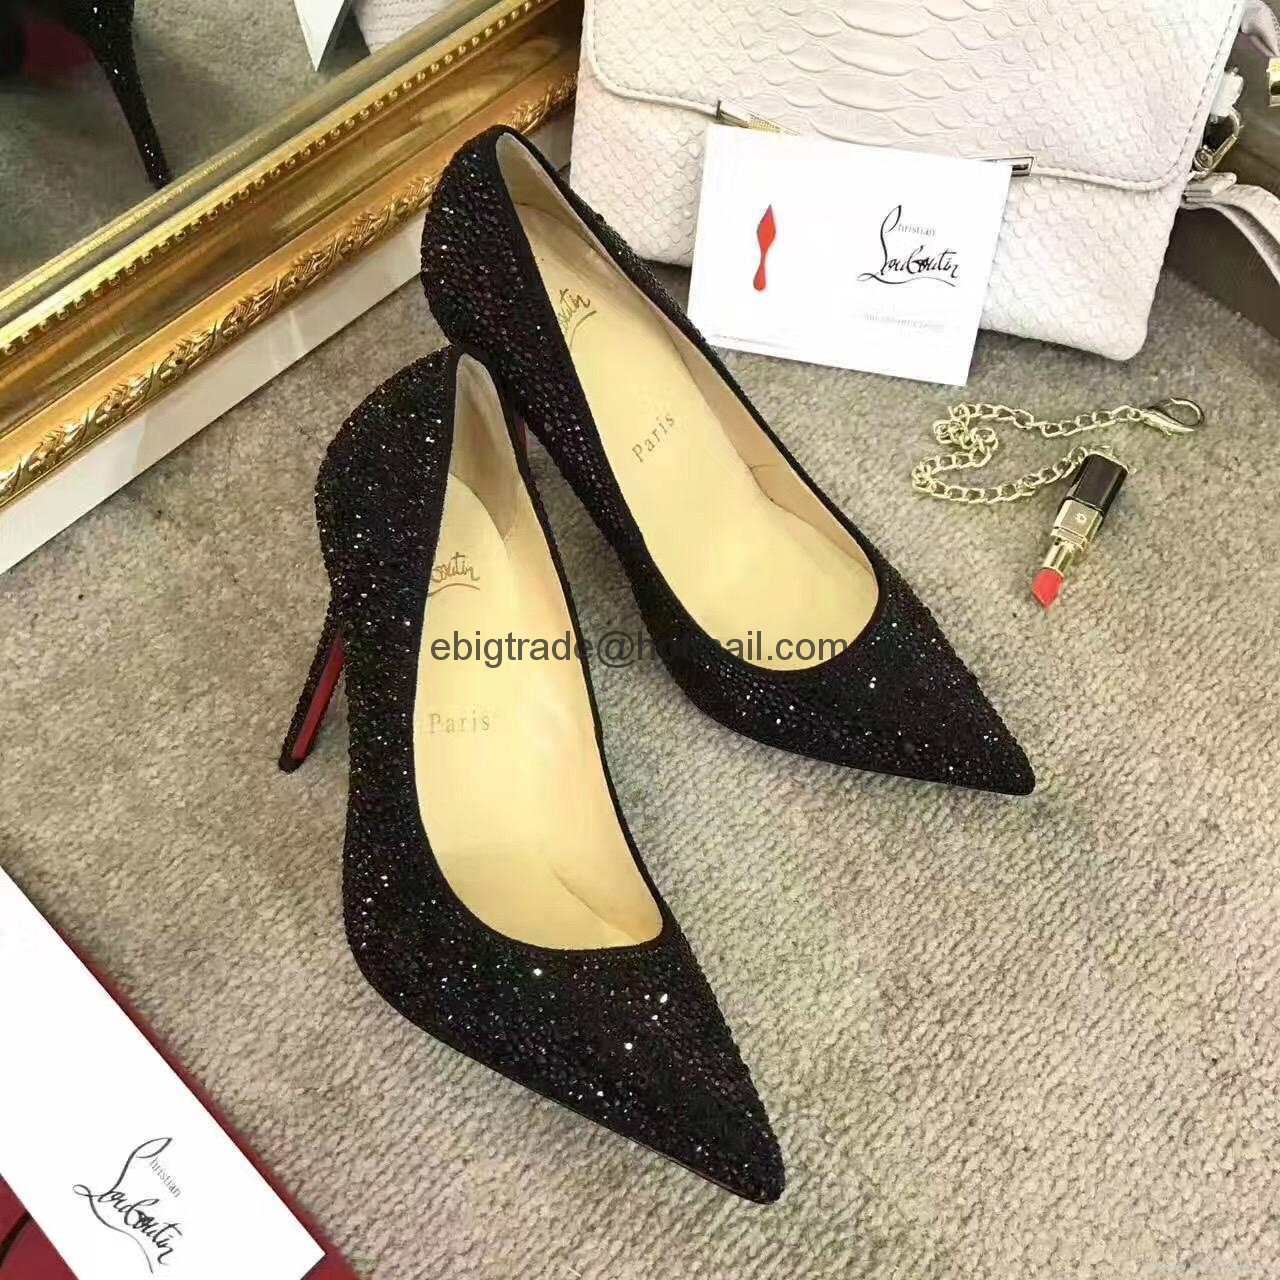 Cheap Christian Louboutin high heels christian louboutin Pumps Louboutin shoes  15